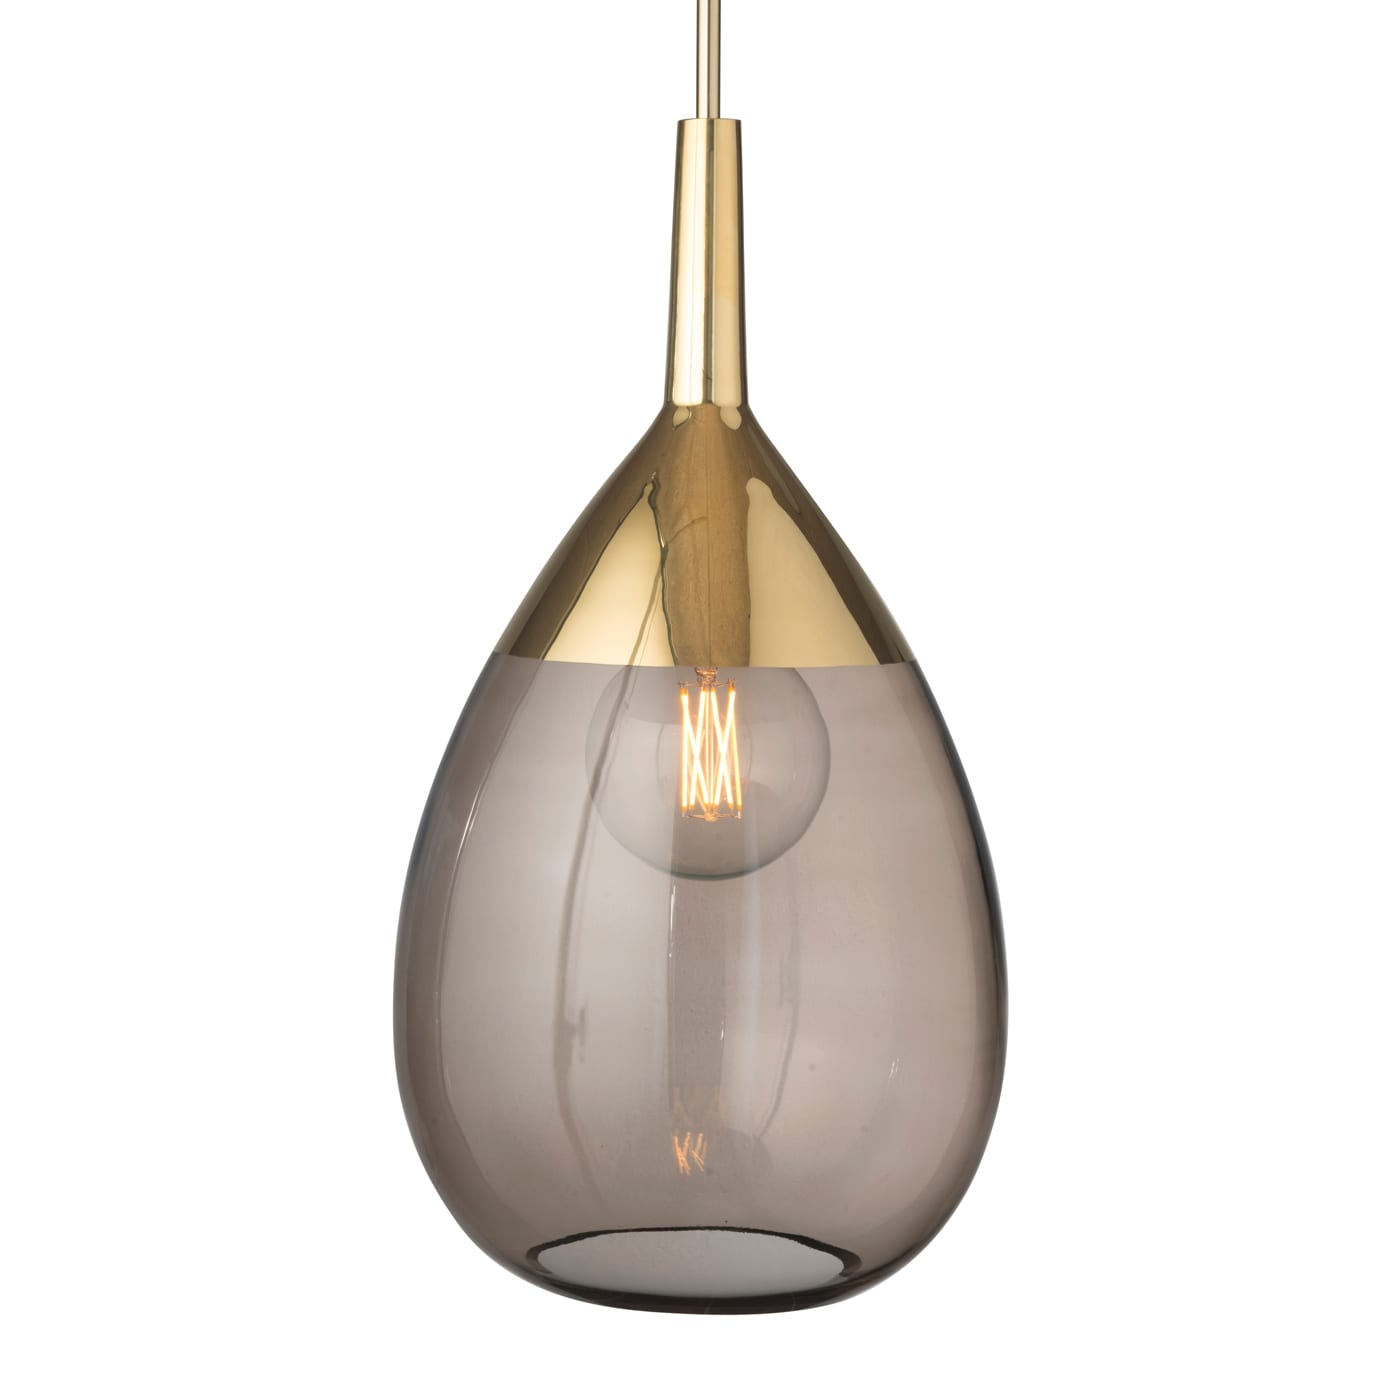 Lute Pendant Lamp, Chestnut Brown / Gold, 70cmH